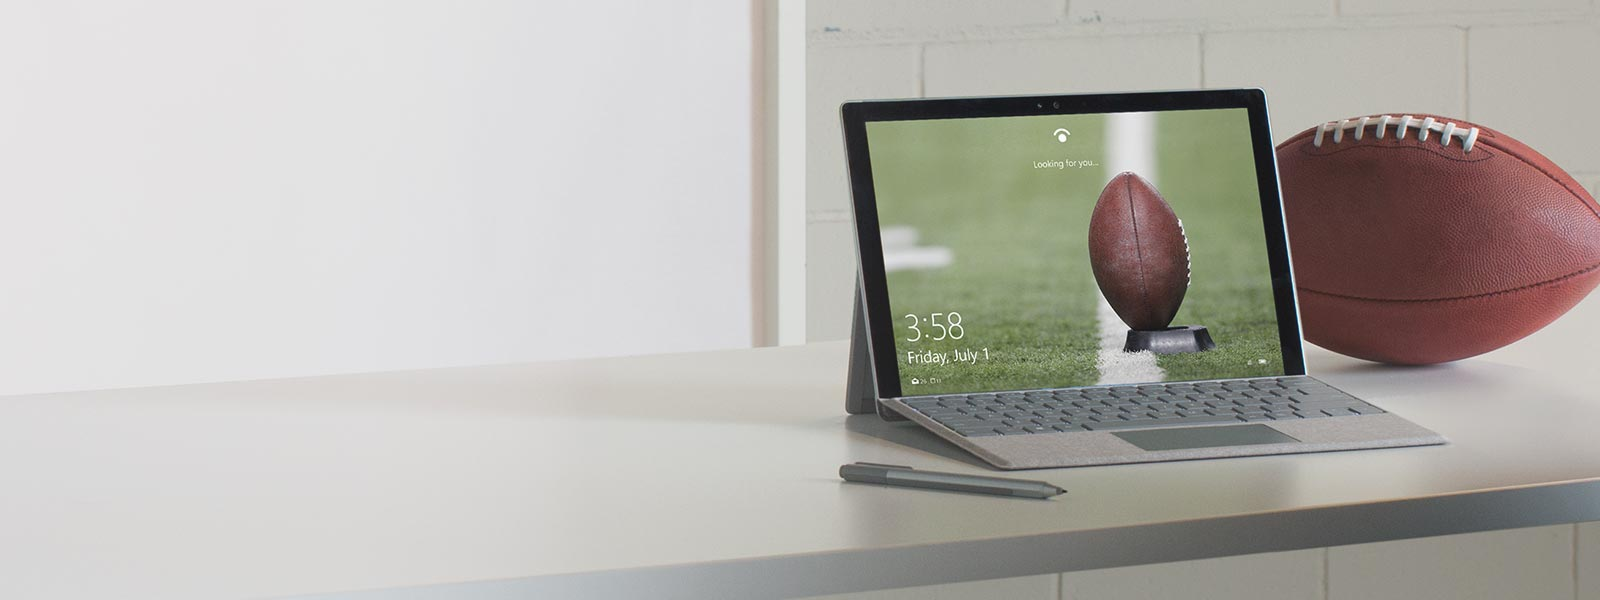 Surface Pro 4, shop limited-time student offer